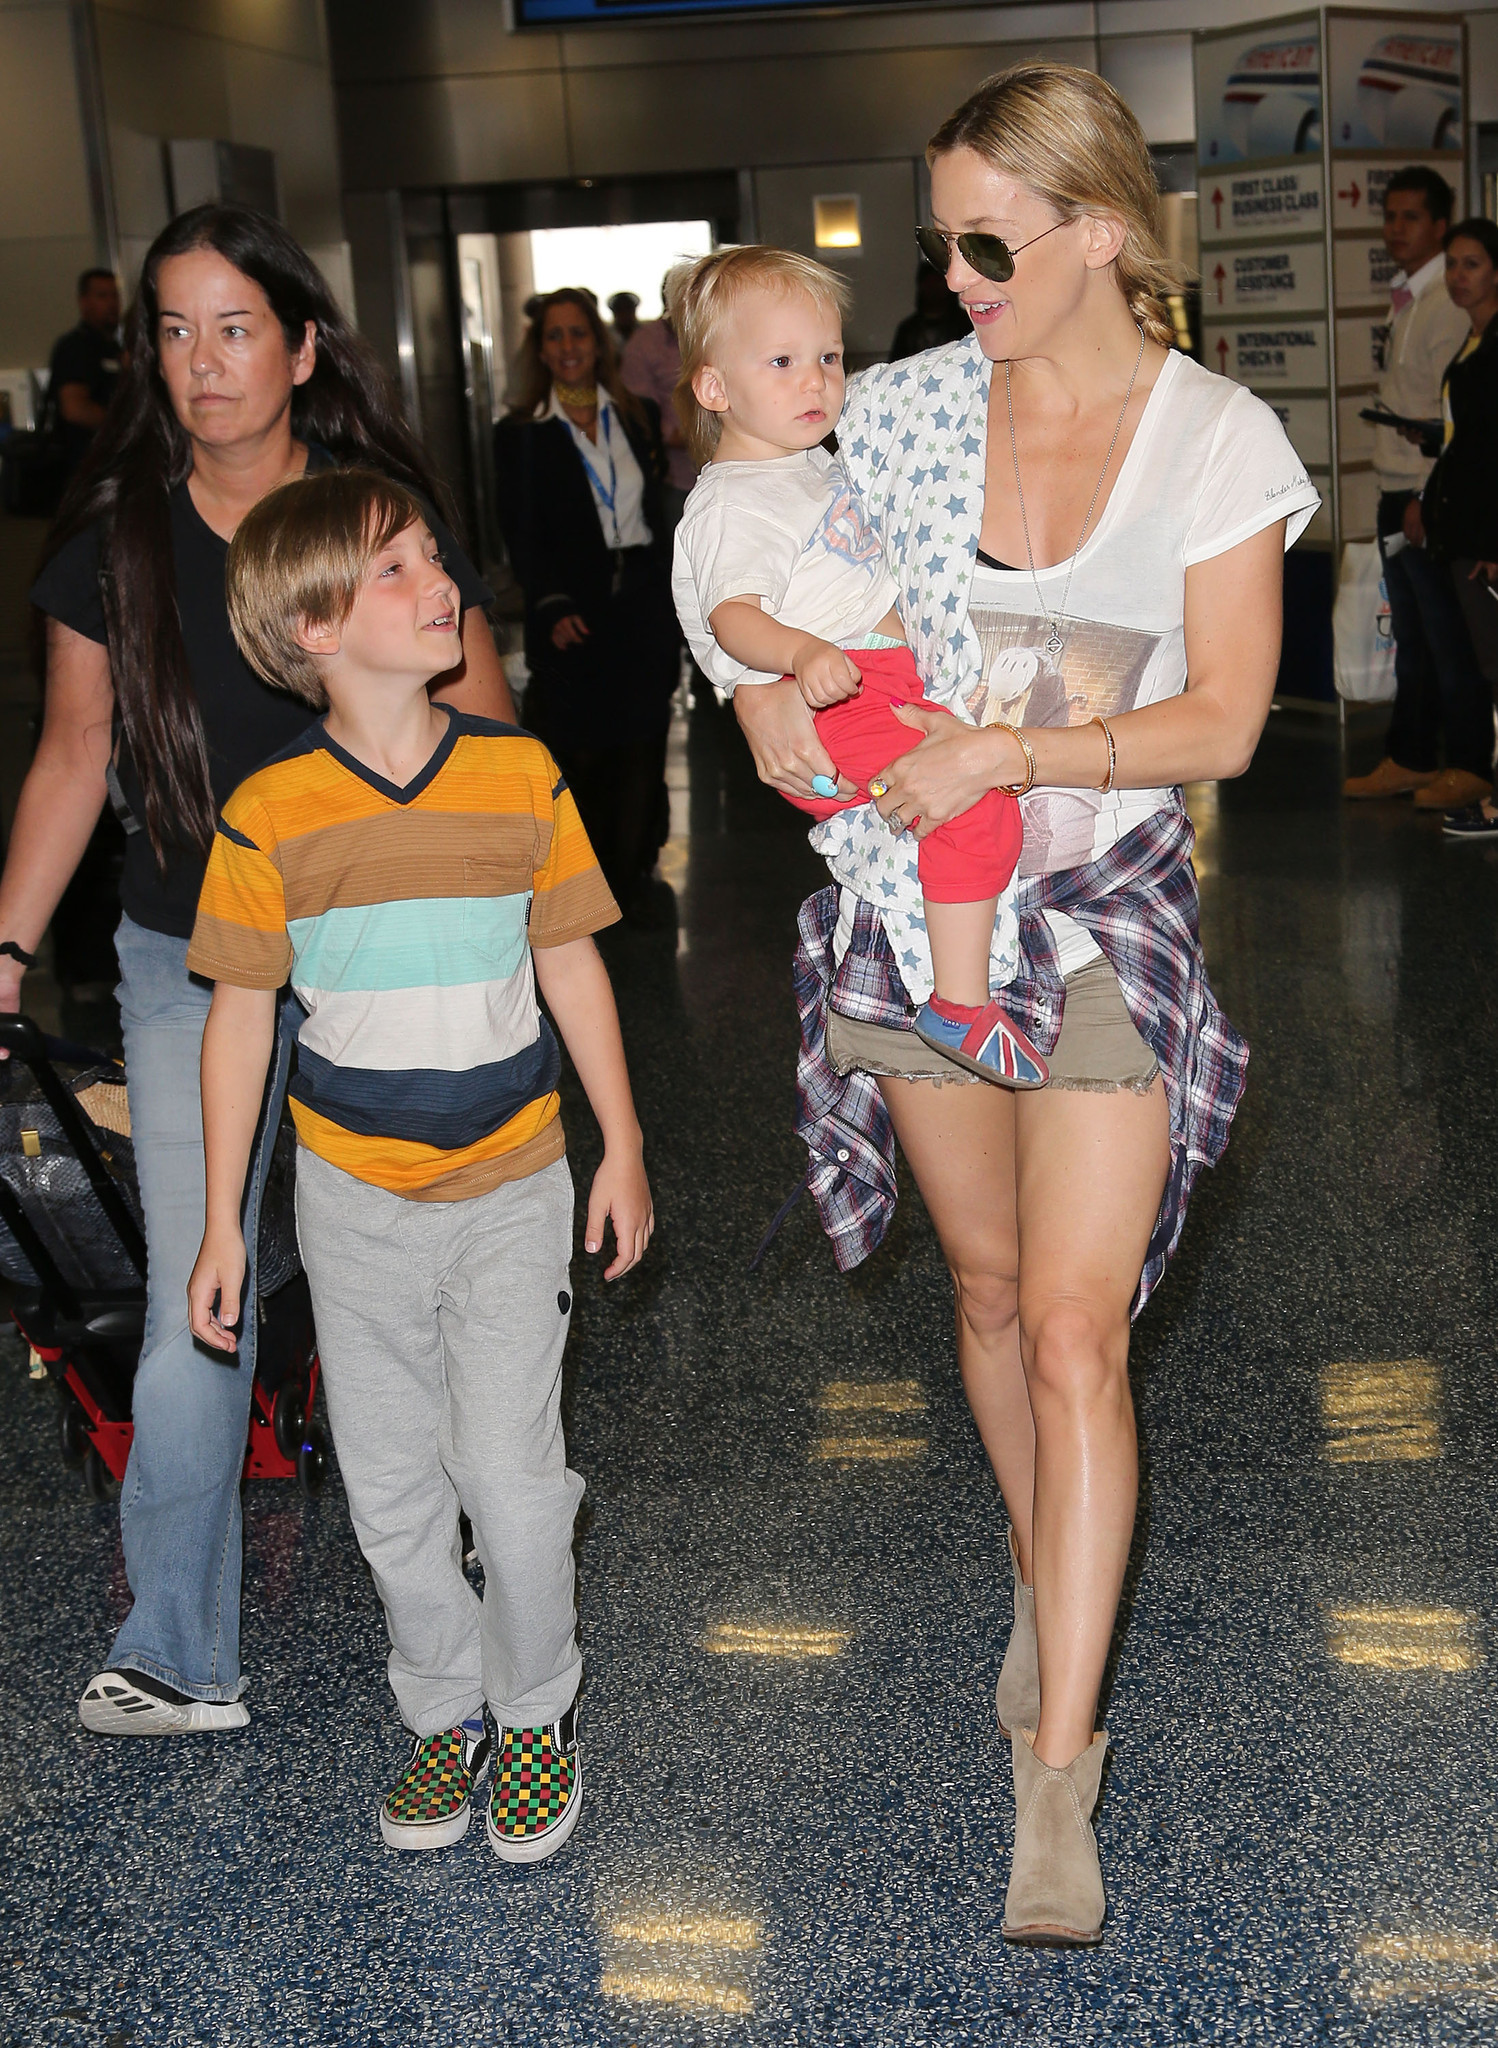 Celeb-spotting around South Florida - Kate Hudson Sighting At Miami International Airport - February 27, 2013